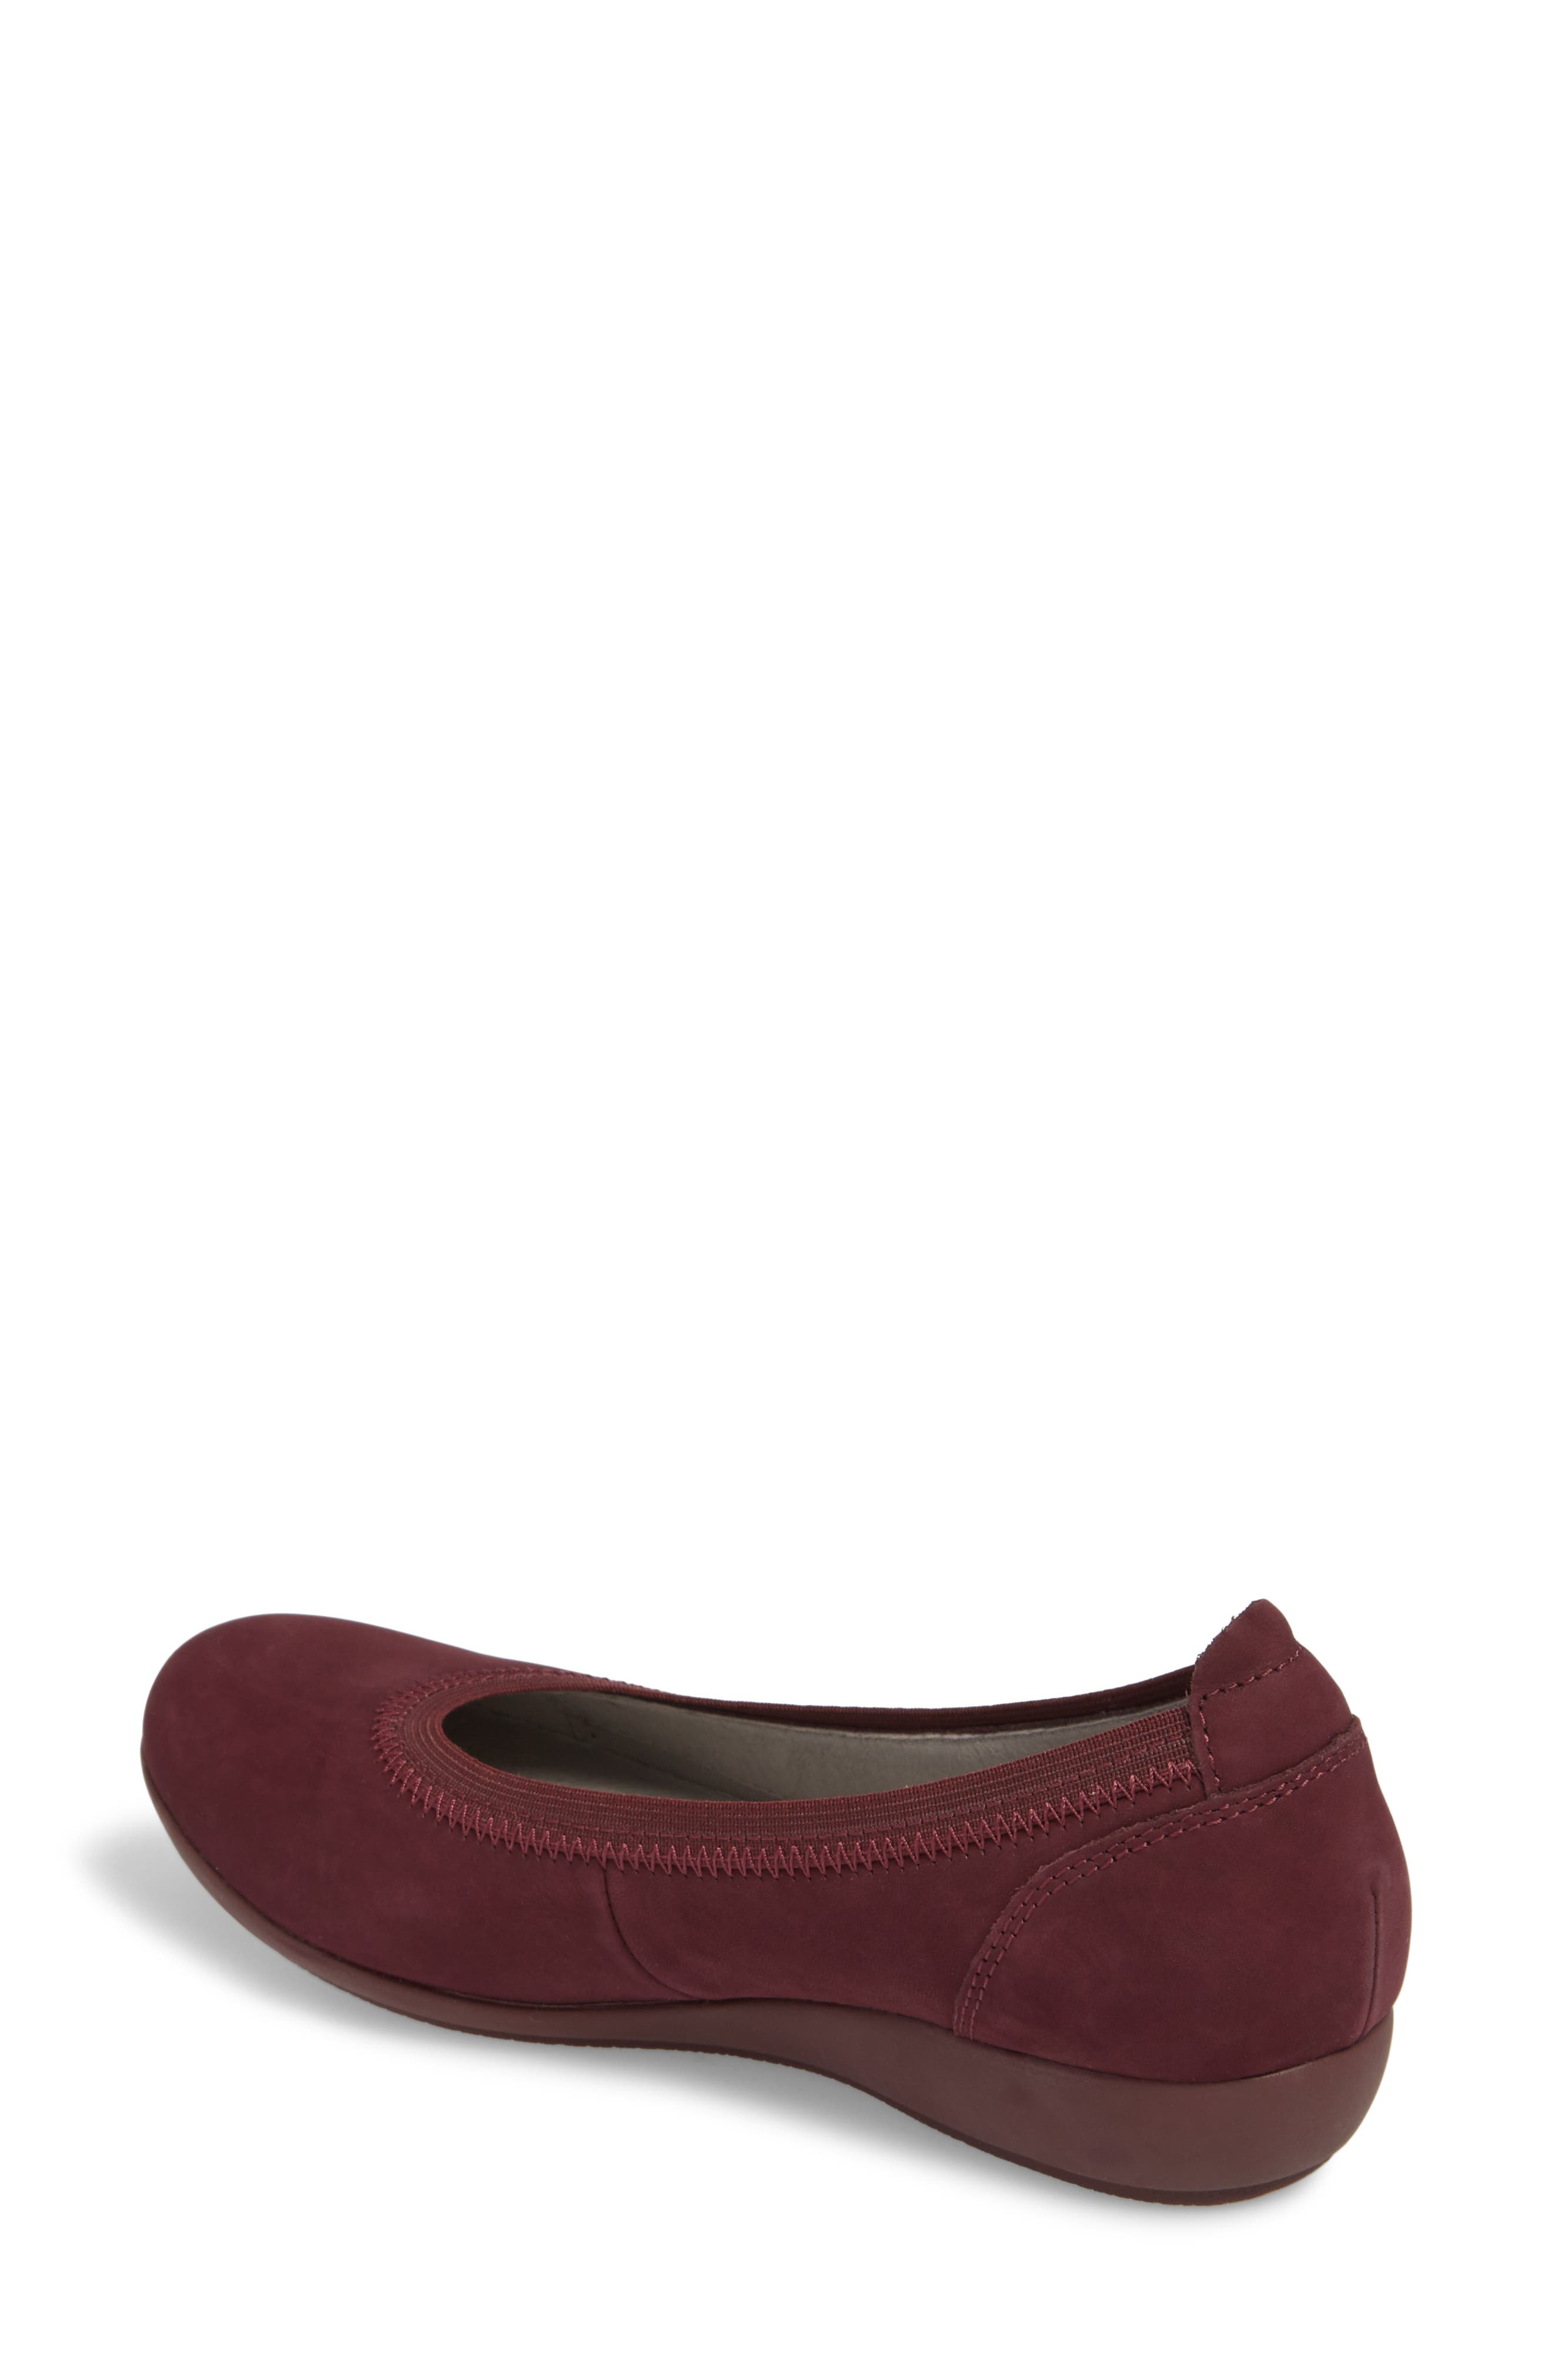 Kristen Ballet Flat,                             Alternate thumbnail 2, color,                             WINE MILLED NUBUCK